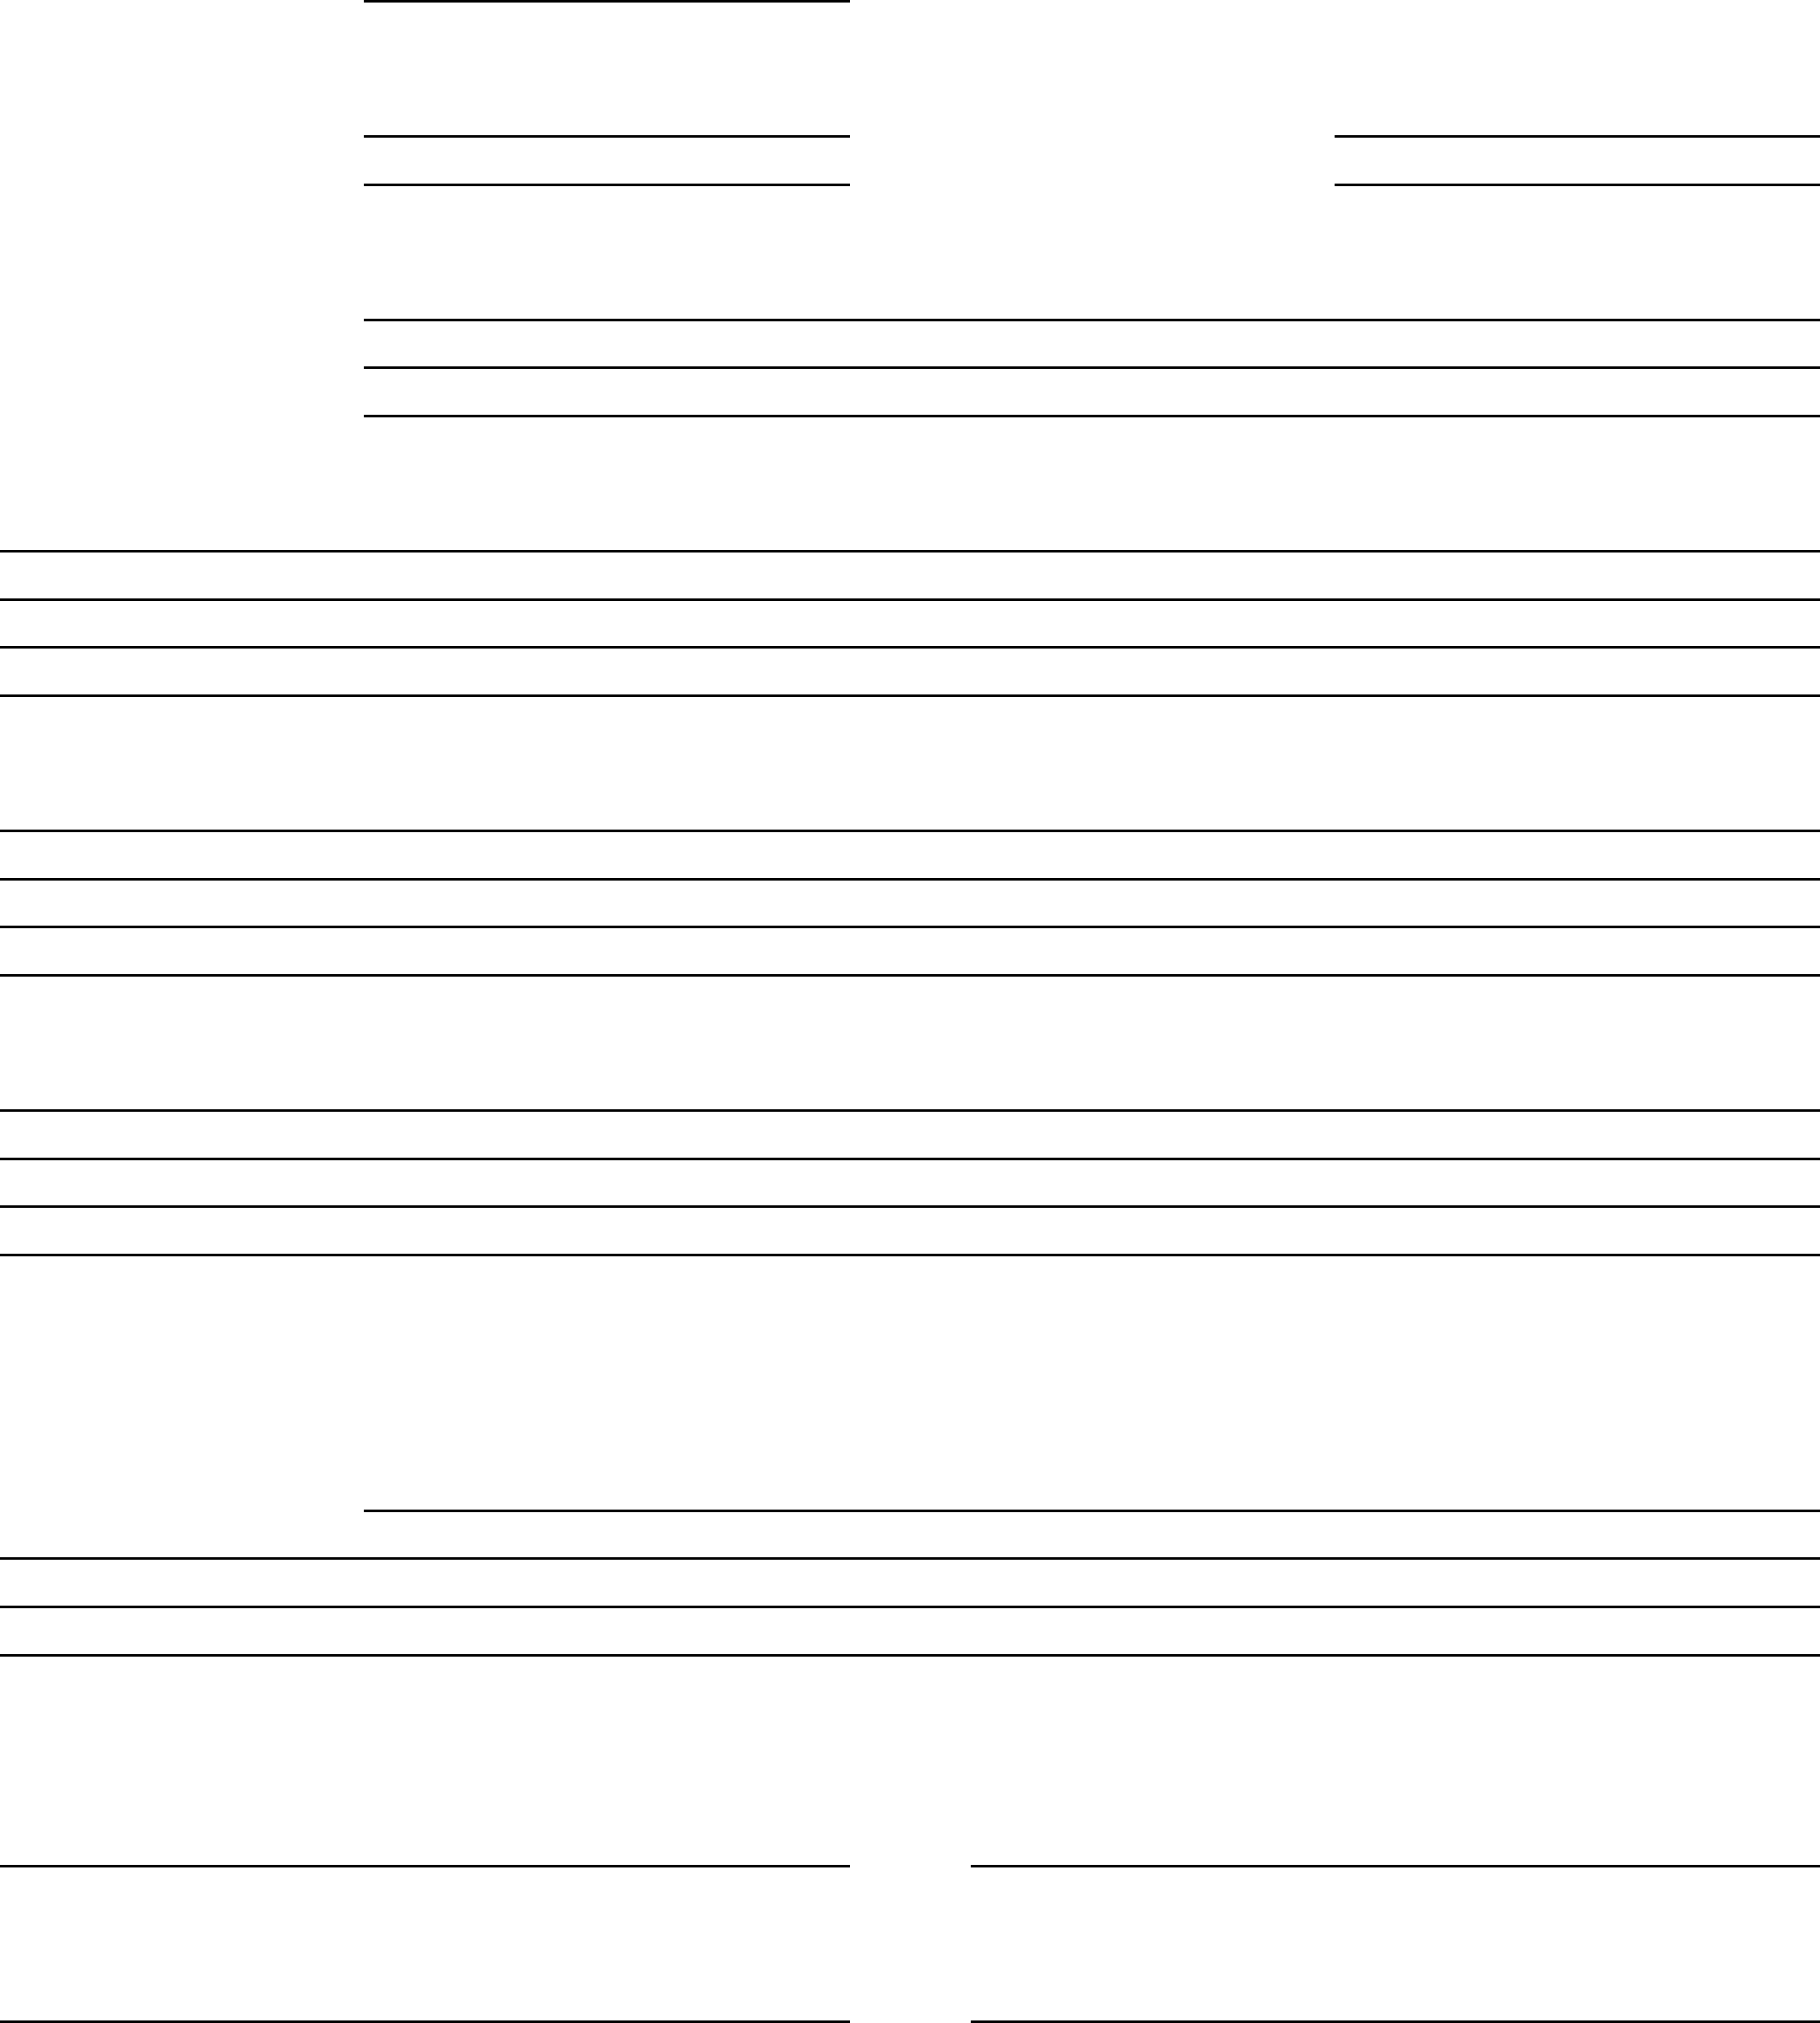 employee incident report template - poesiafm.tk